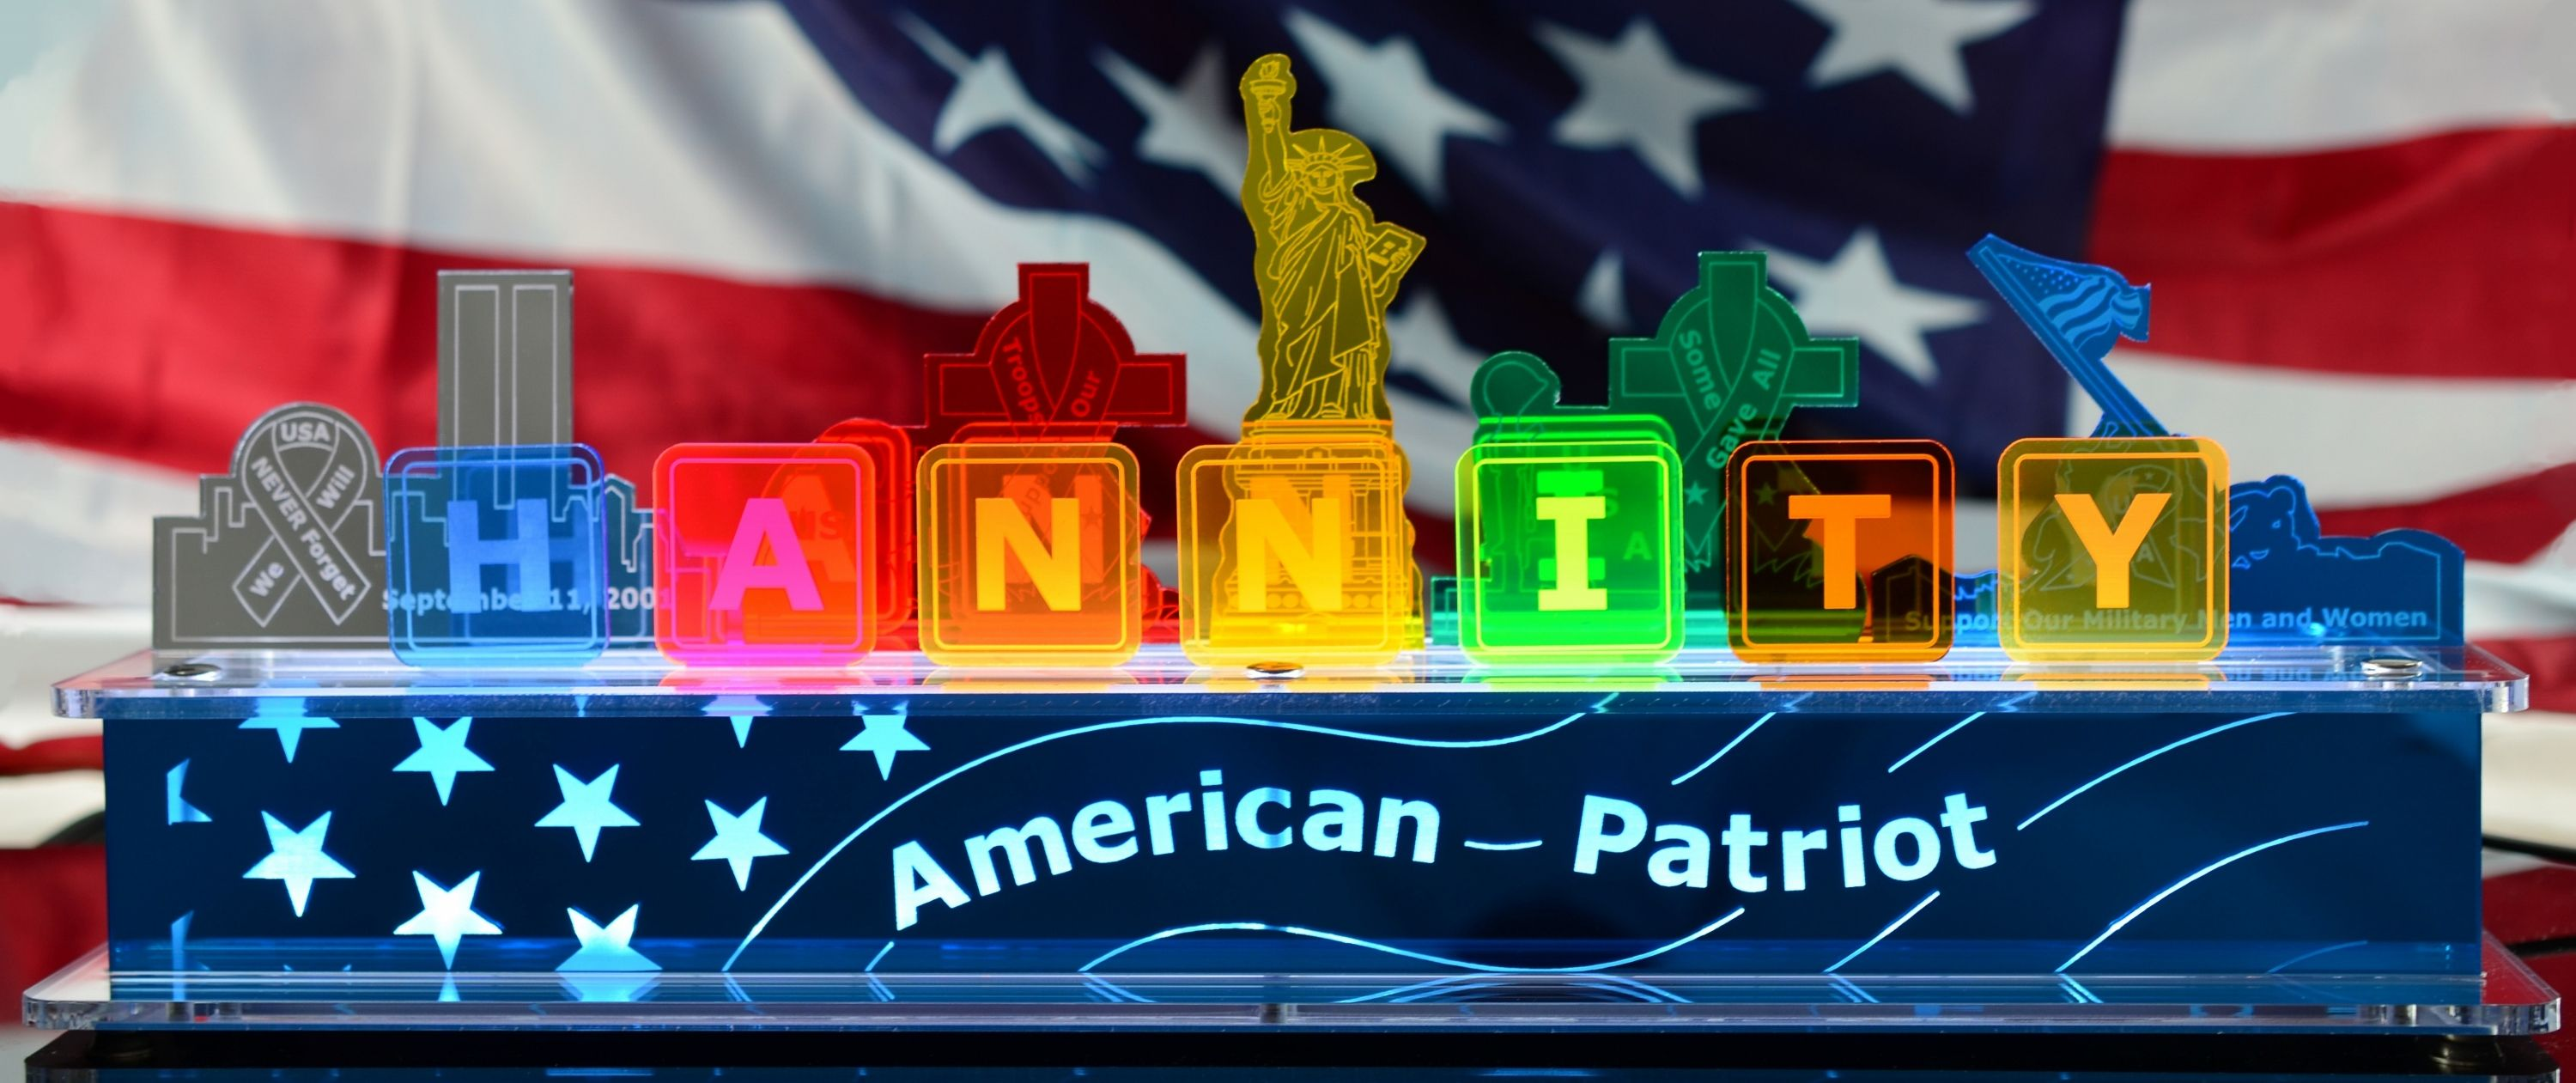 Promotional PBM American Patriot Display Lamp sent to Radio and TV